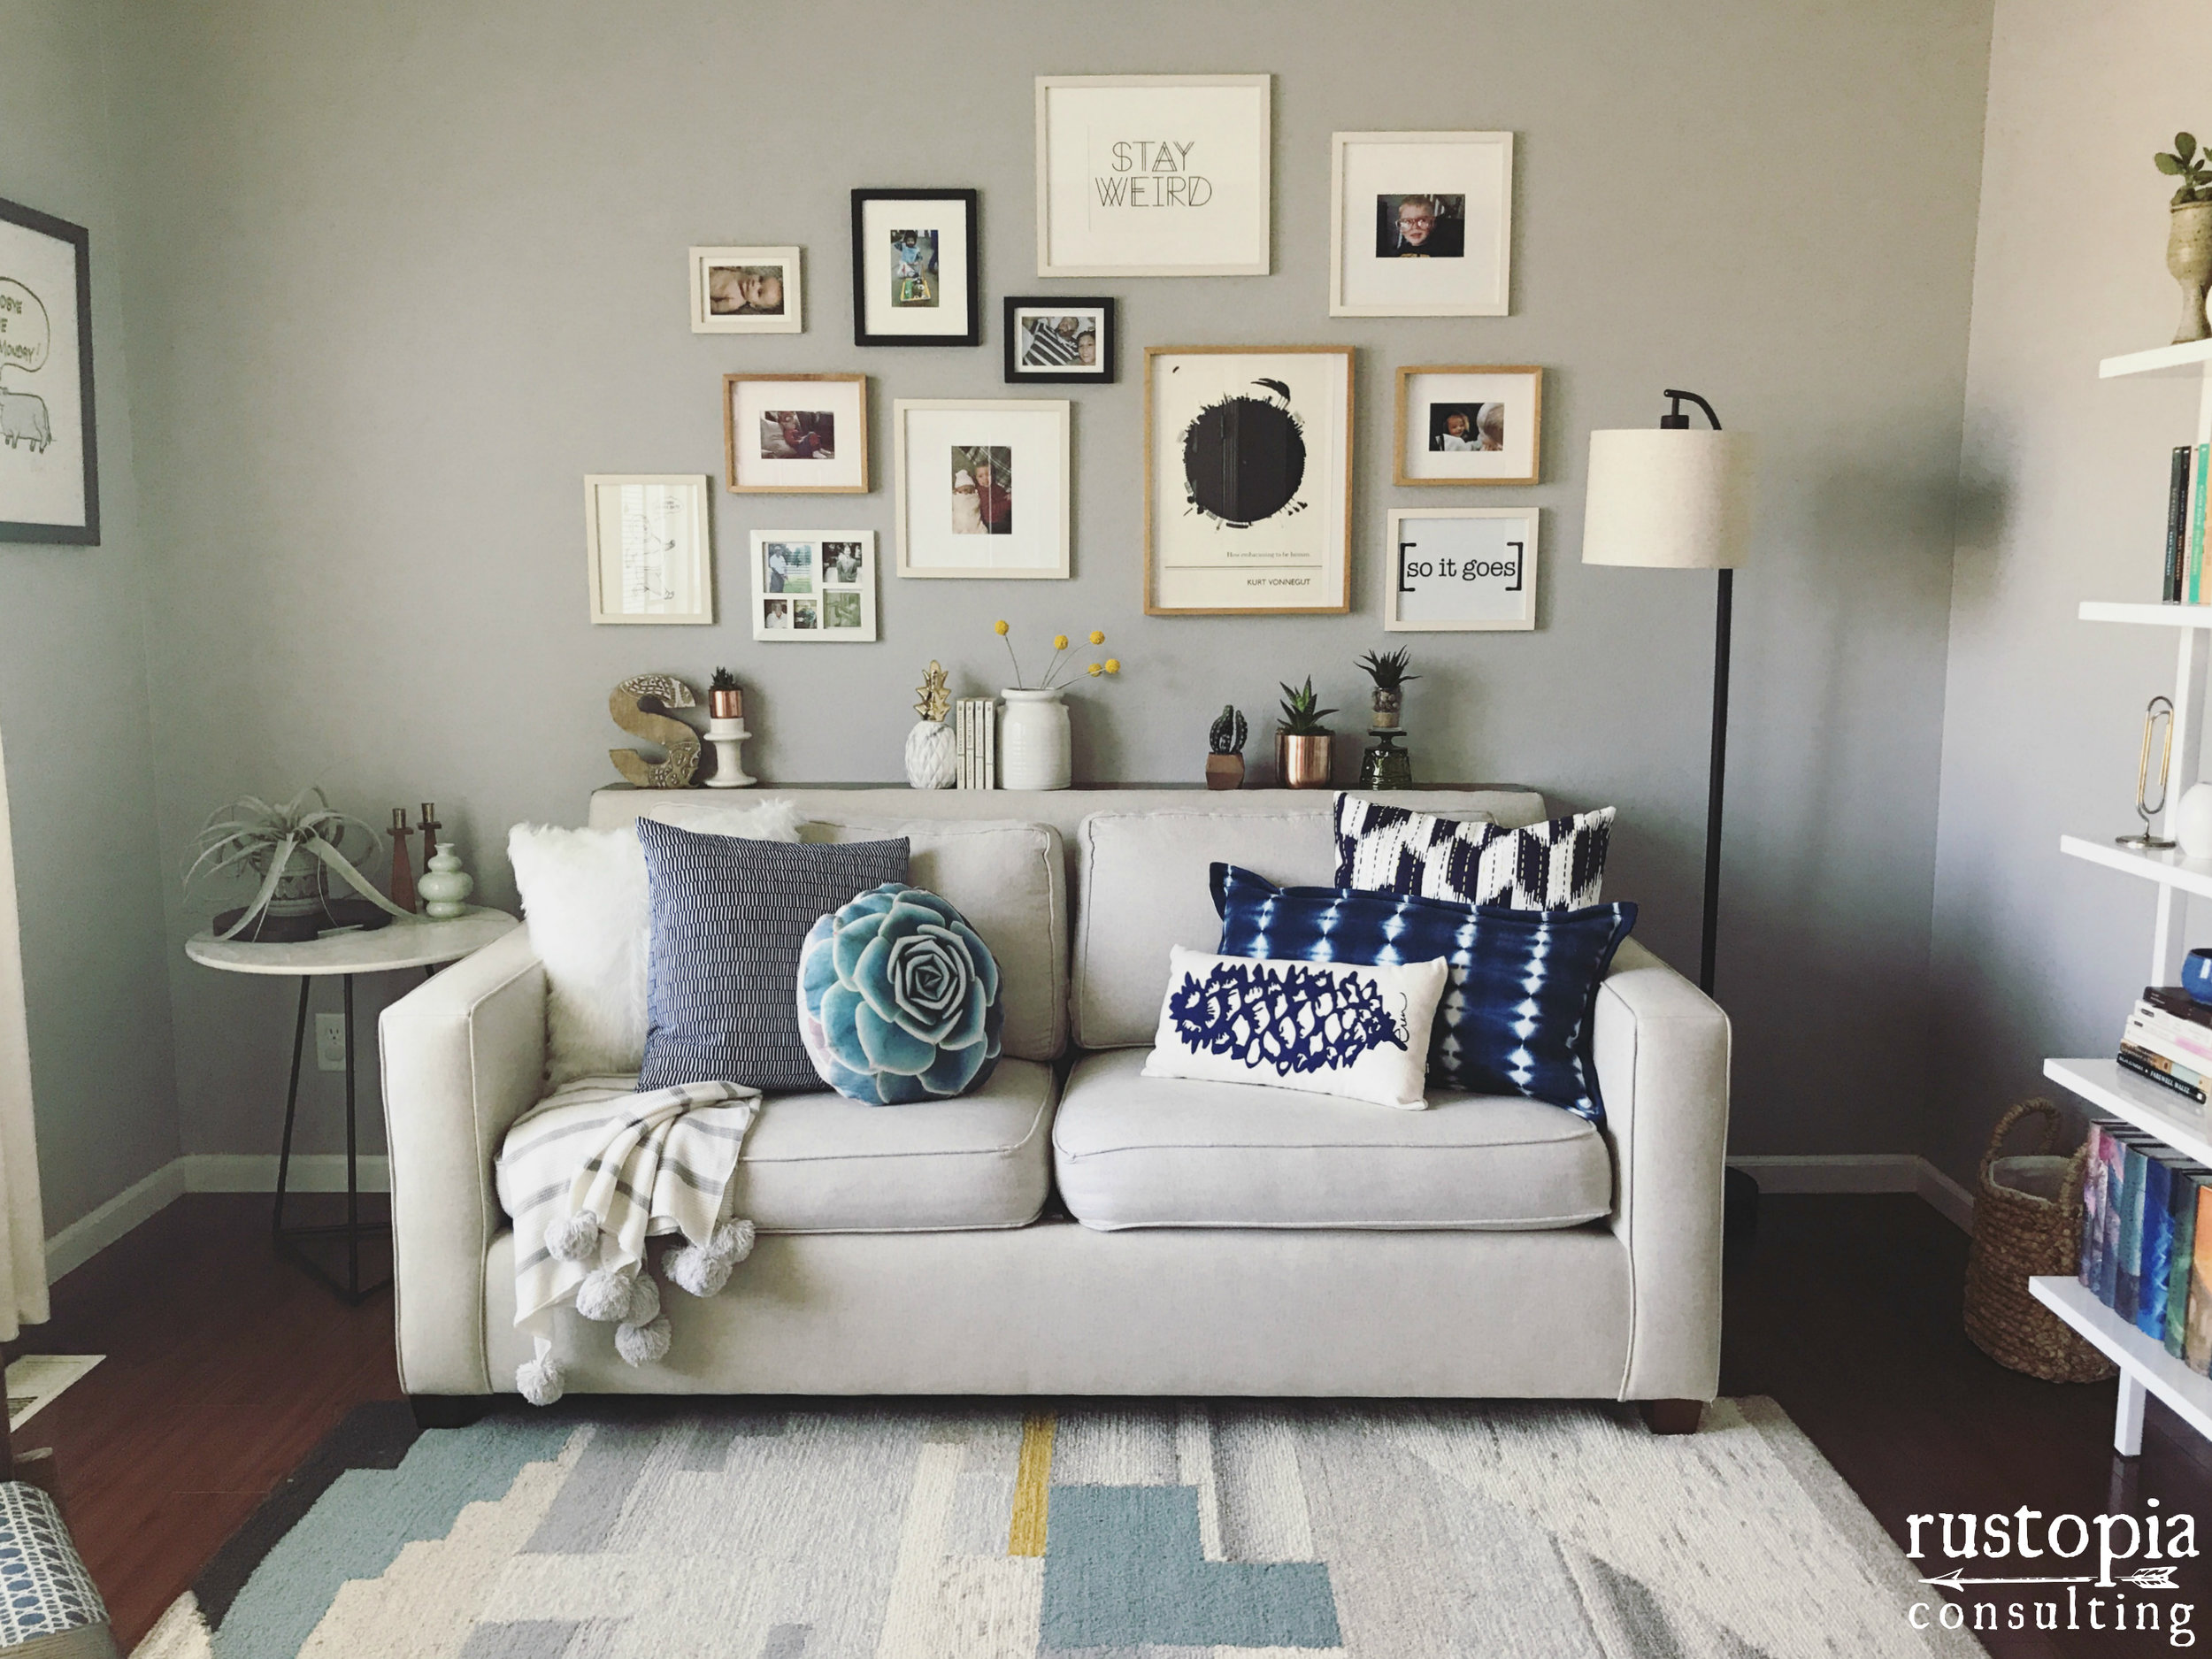 Living room design in neutral with pops of navy, black, and grey. | RustopiaConsulting.com